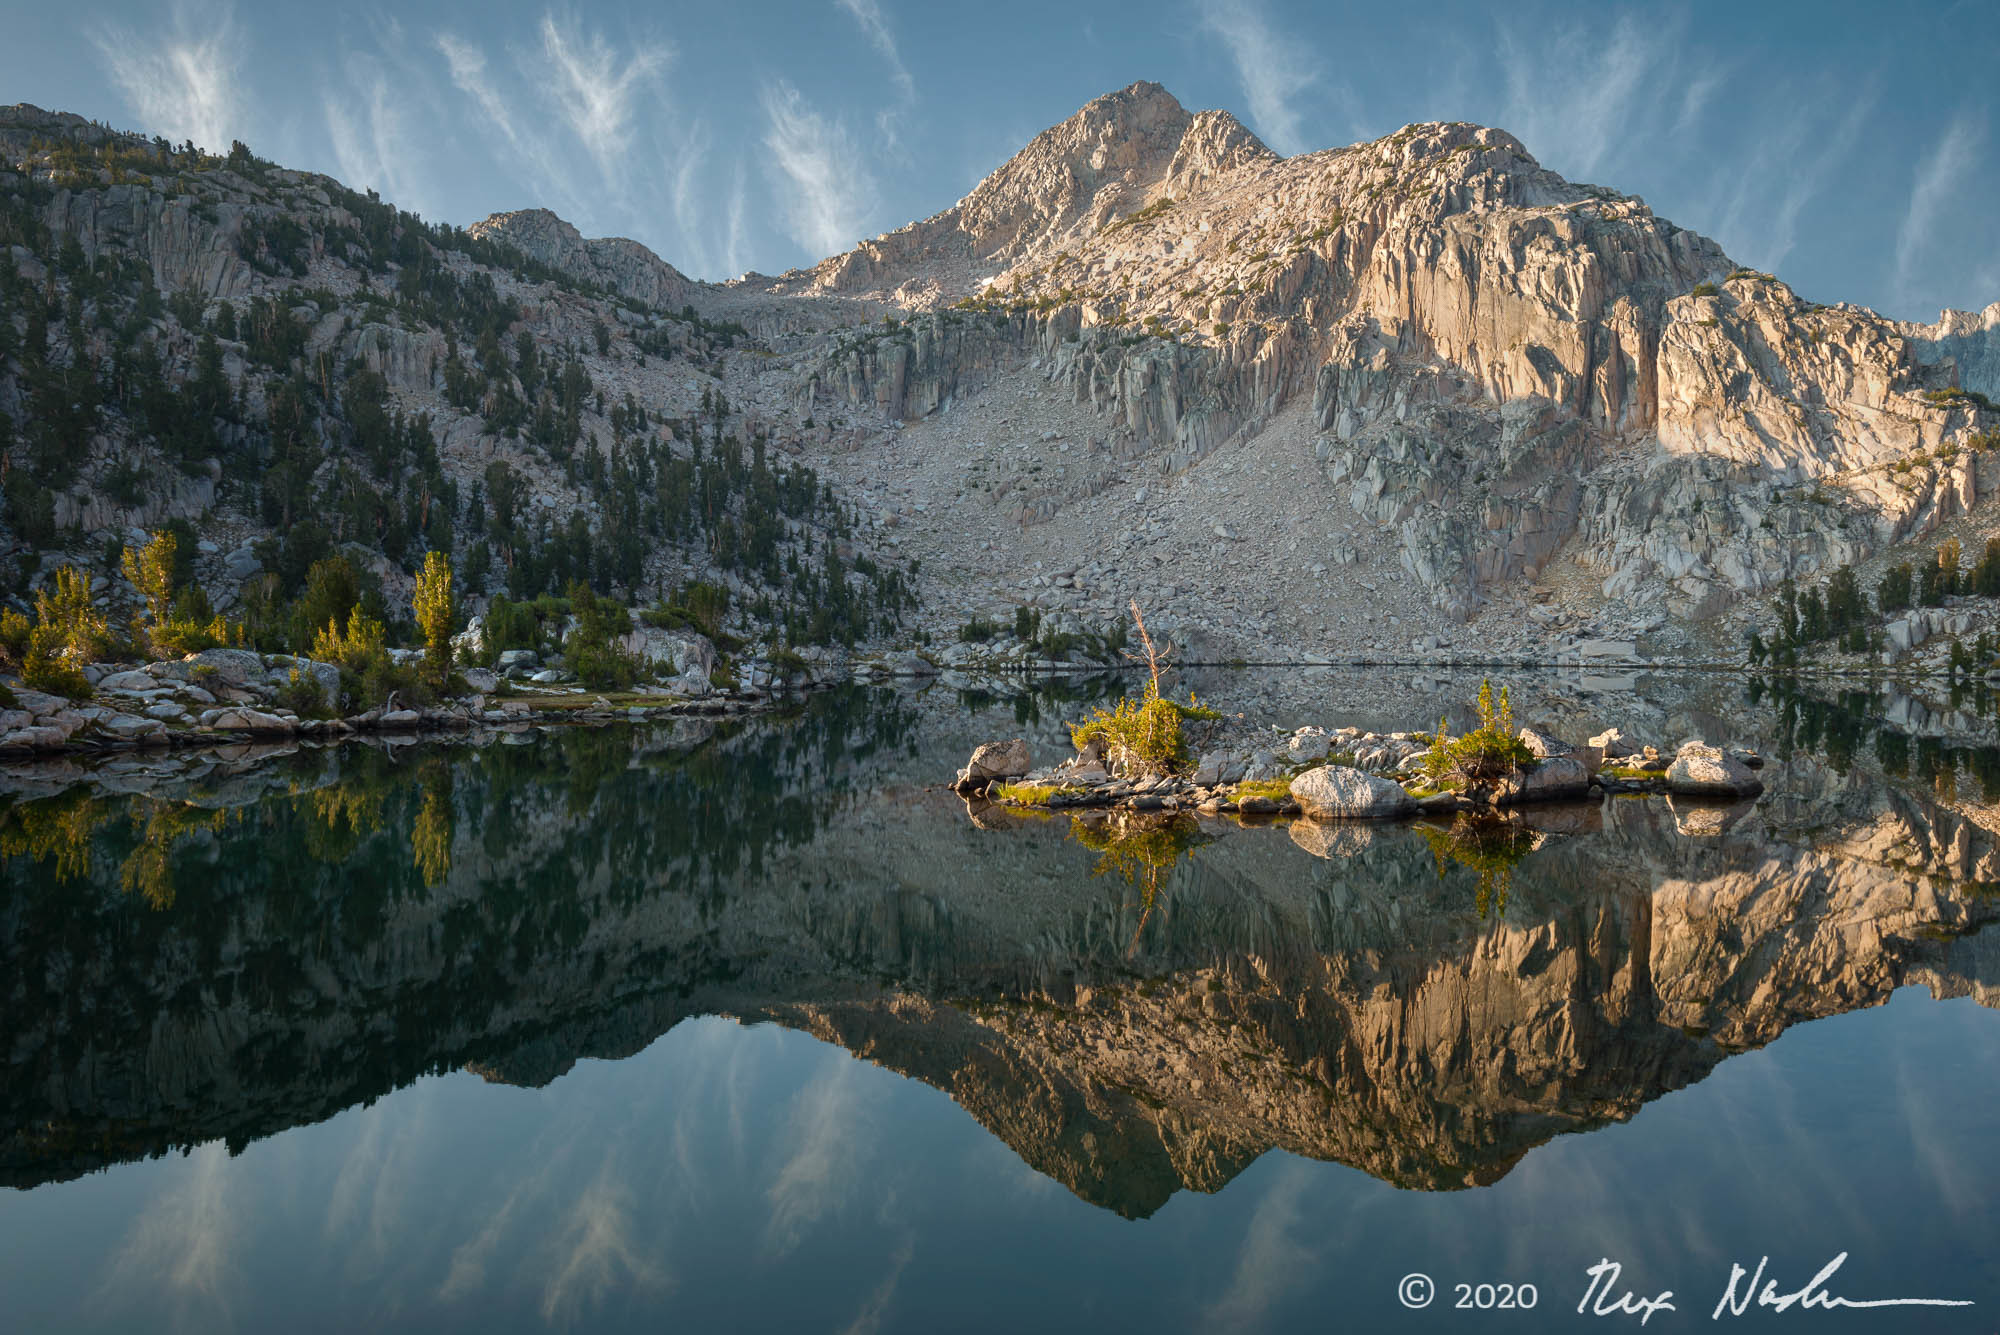 Islands in the Sun - High Sierra, King's Canyon NP